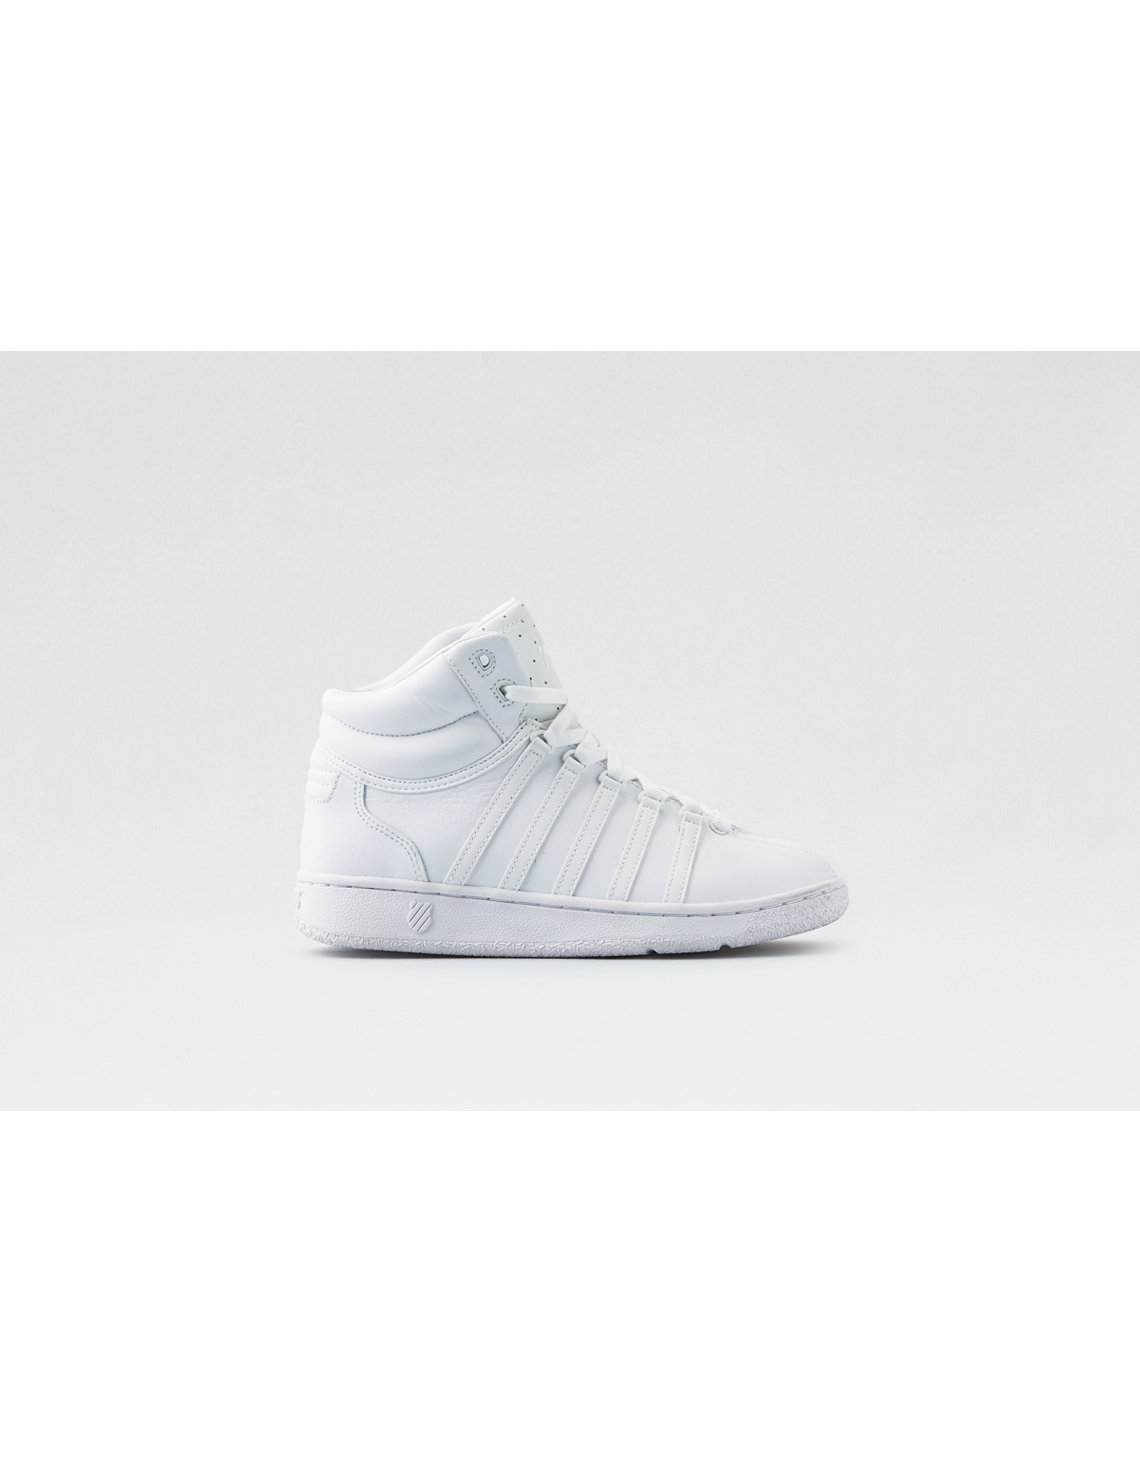 K-Swiss Classic VN Mid Sneaker. Placeholder image. Product Image 95301f803cb